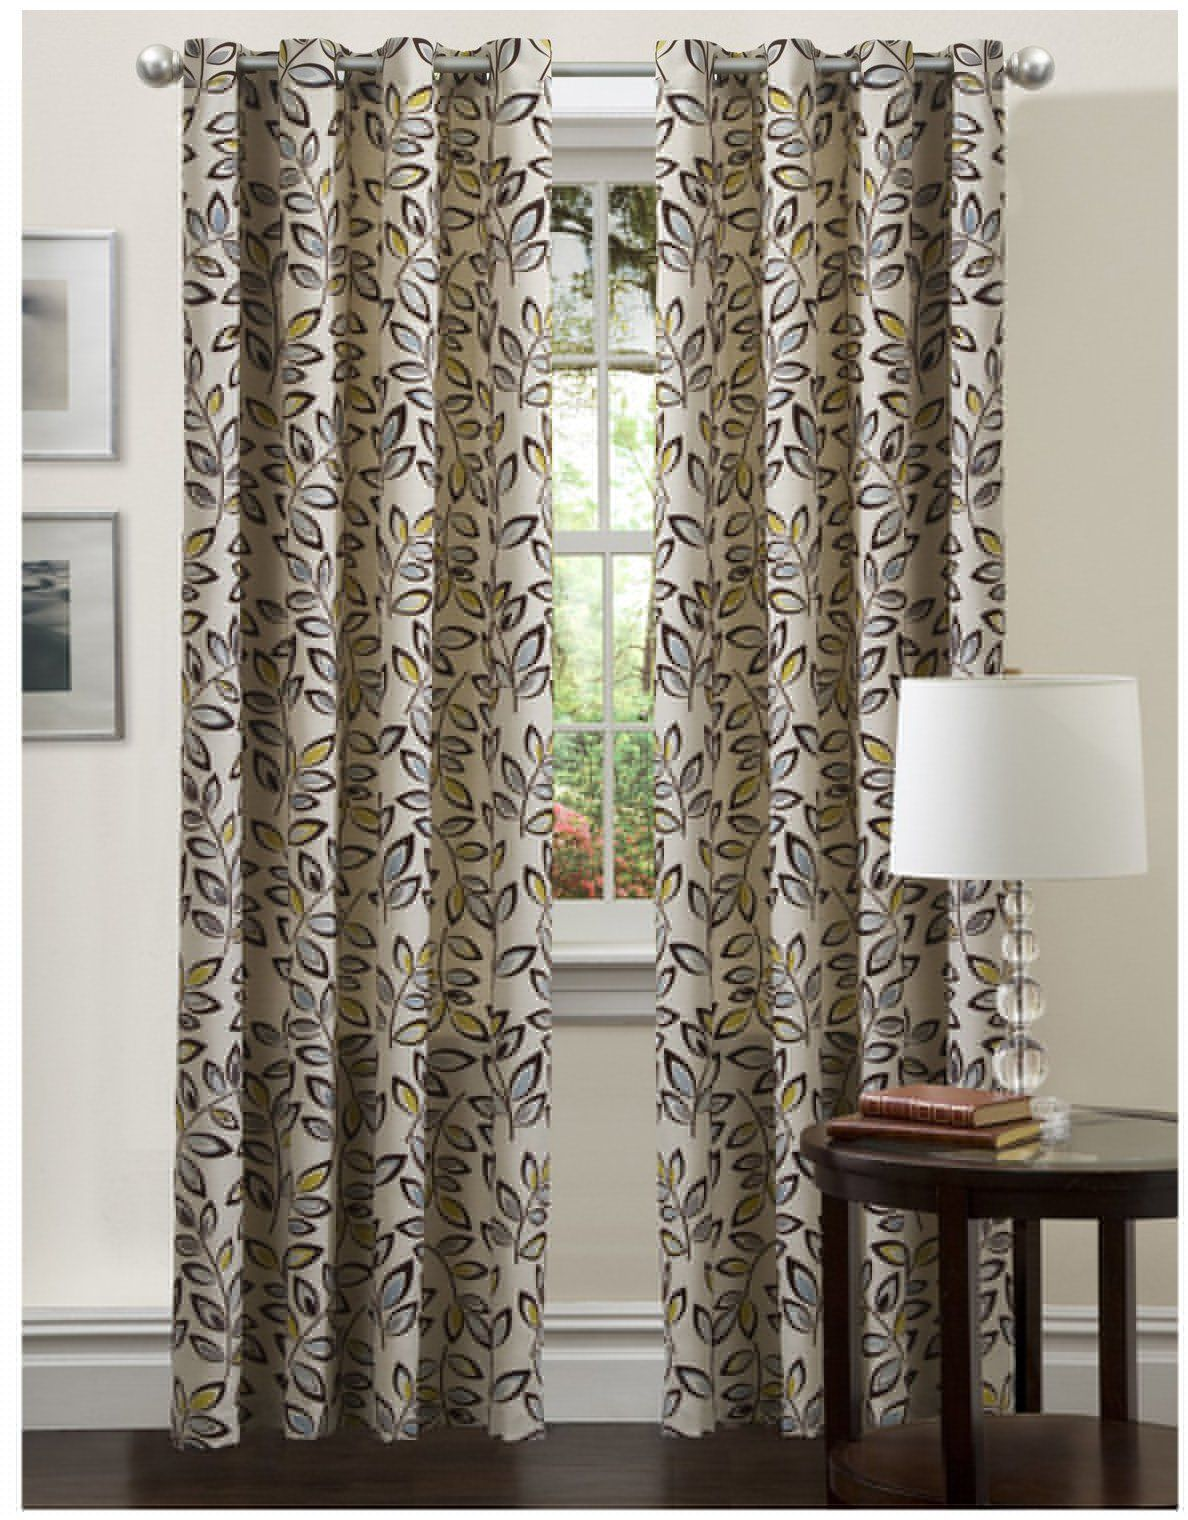 Lush Decor Ventura Panel in blue curtain